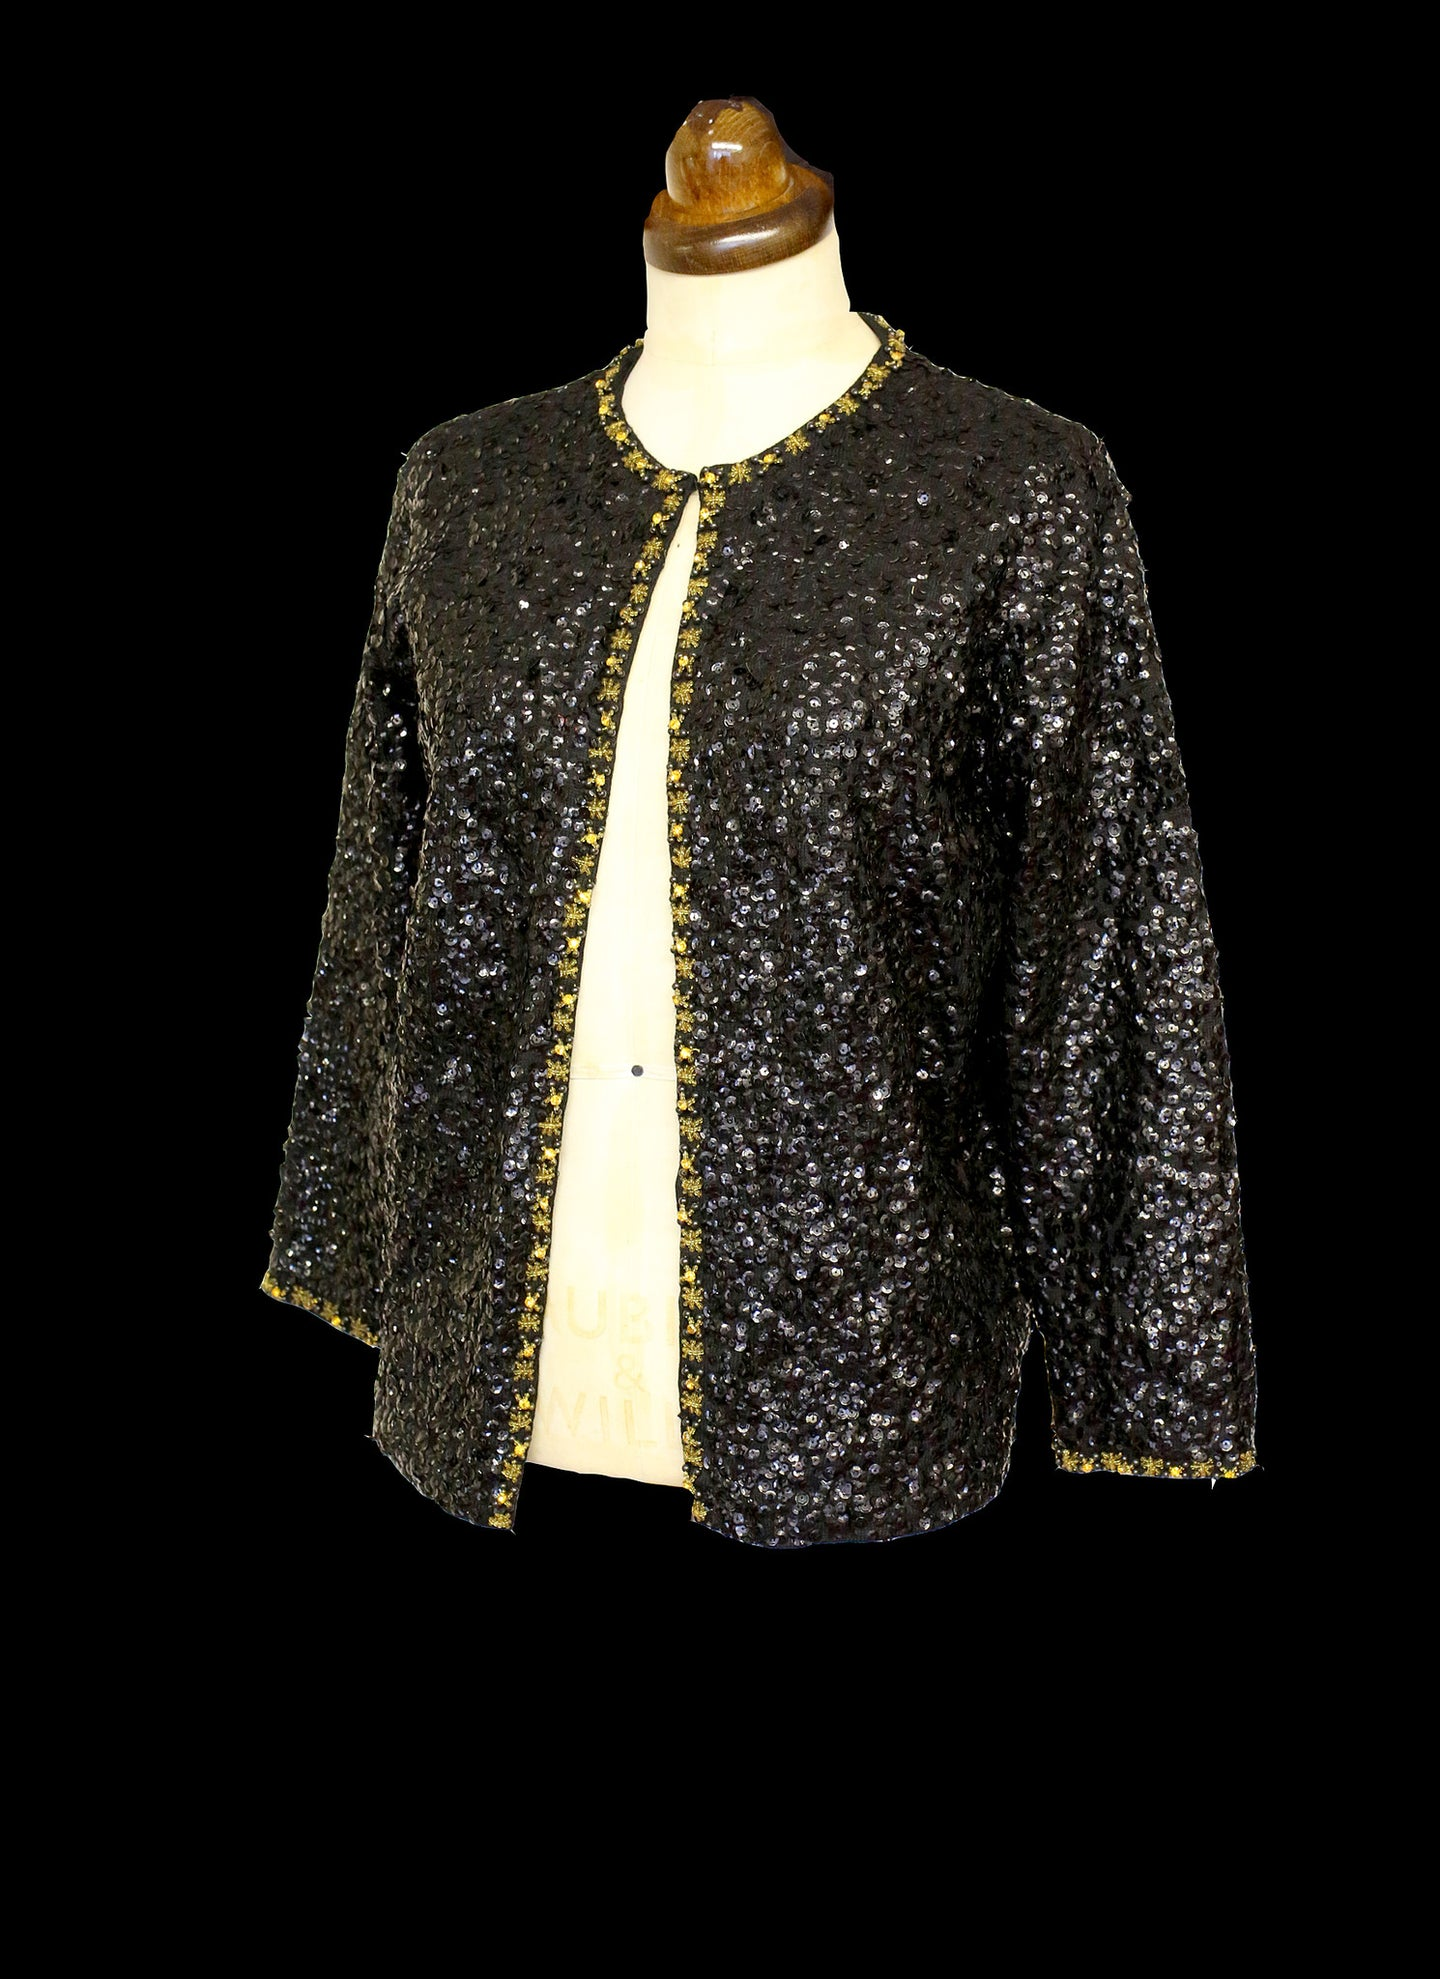 Vintage 1950s Black Gold Sequin Cardigan